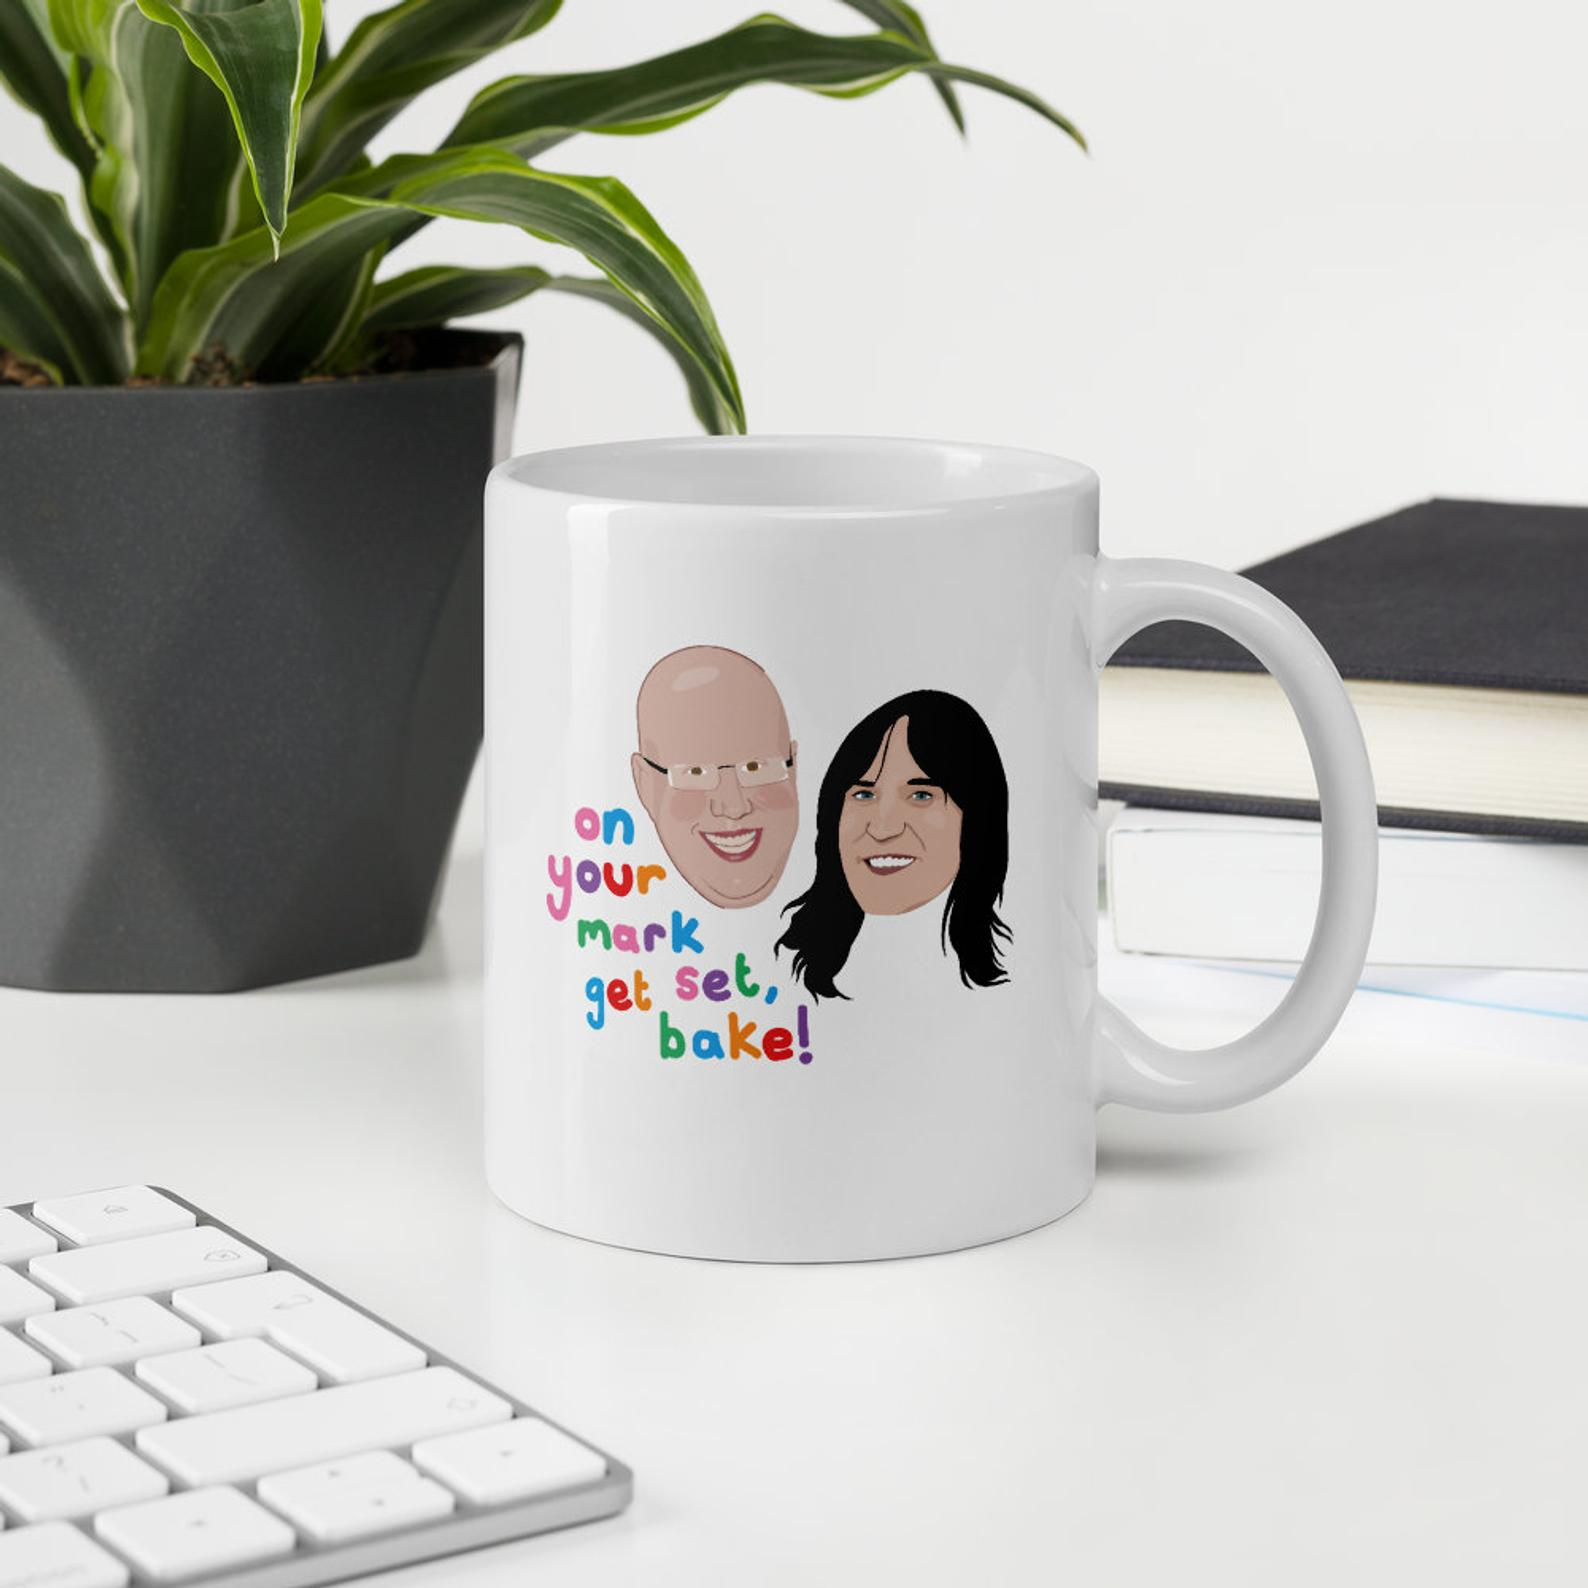 Gift ideas for fans of The Great British Baking Show: A coffee mug with Matt and Noel from Pony Chops Design.